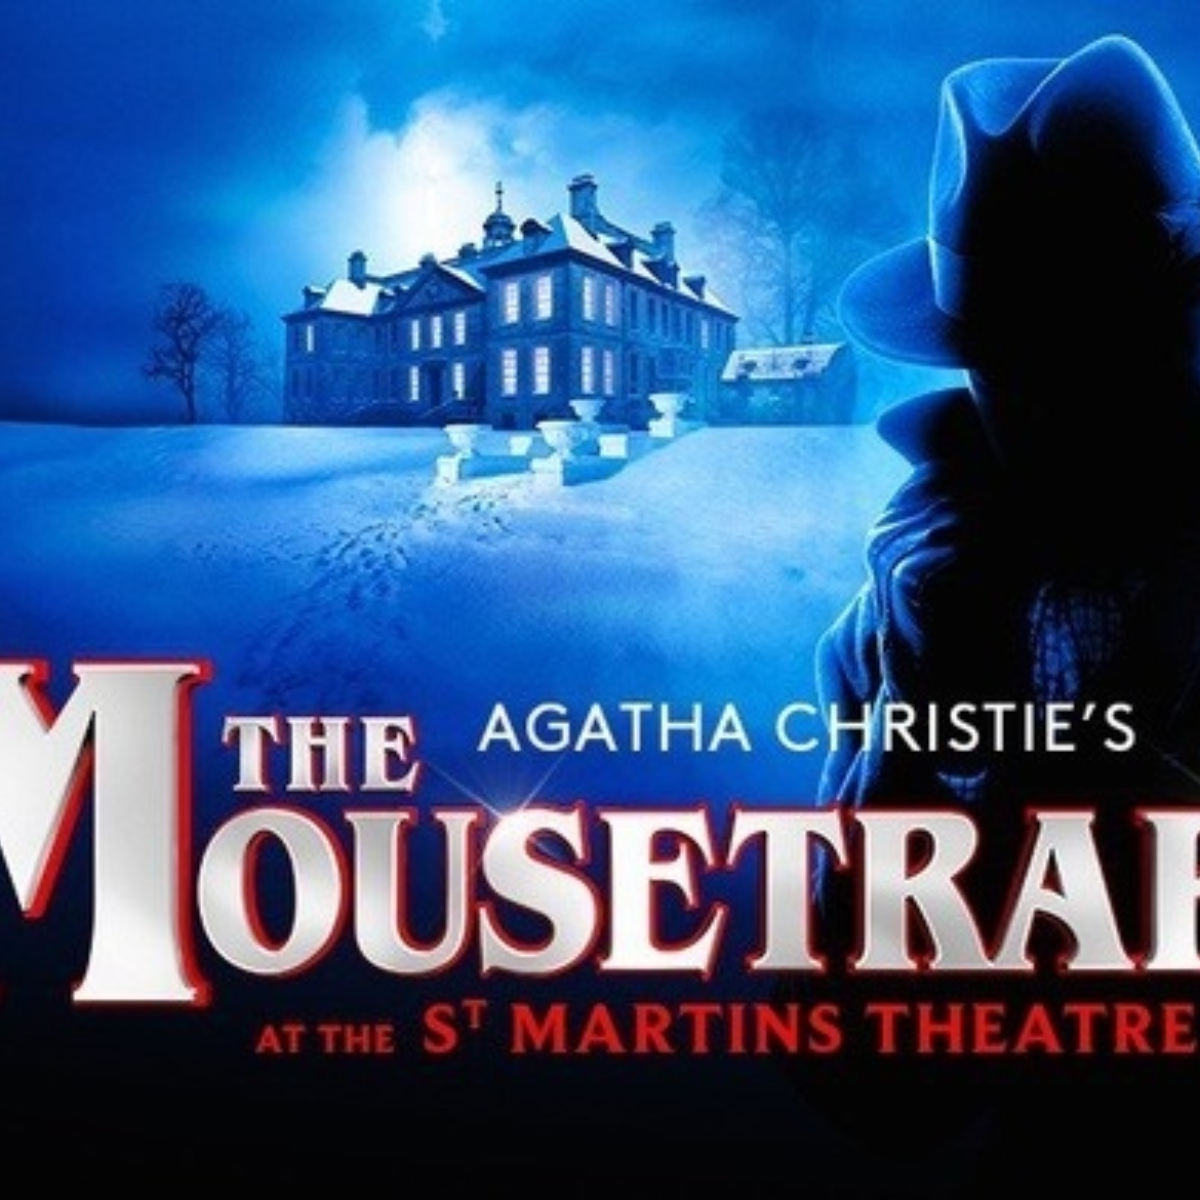 The Mousetrap Images